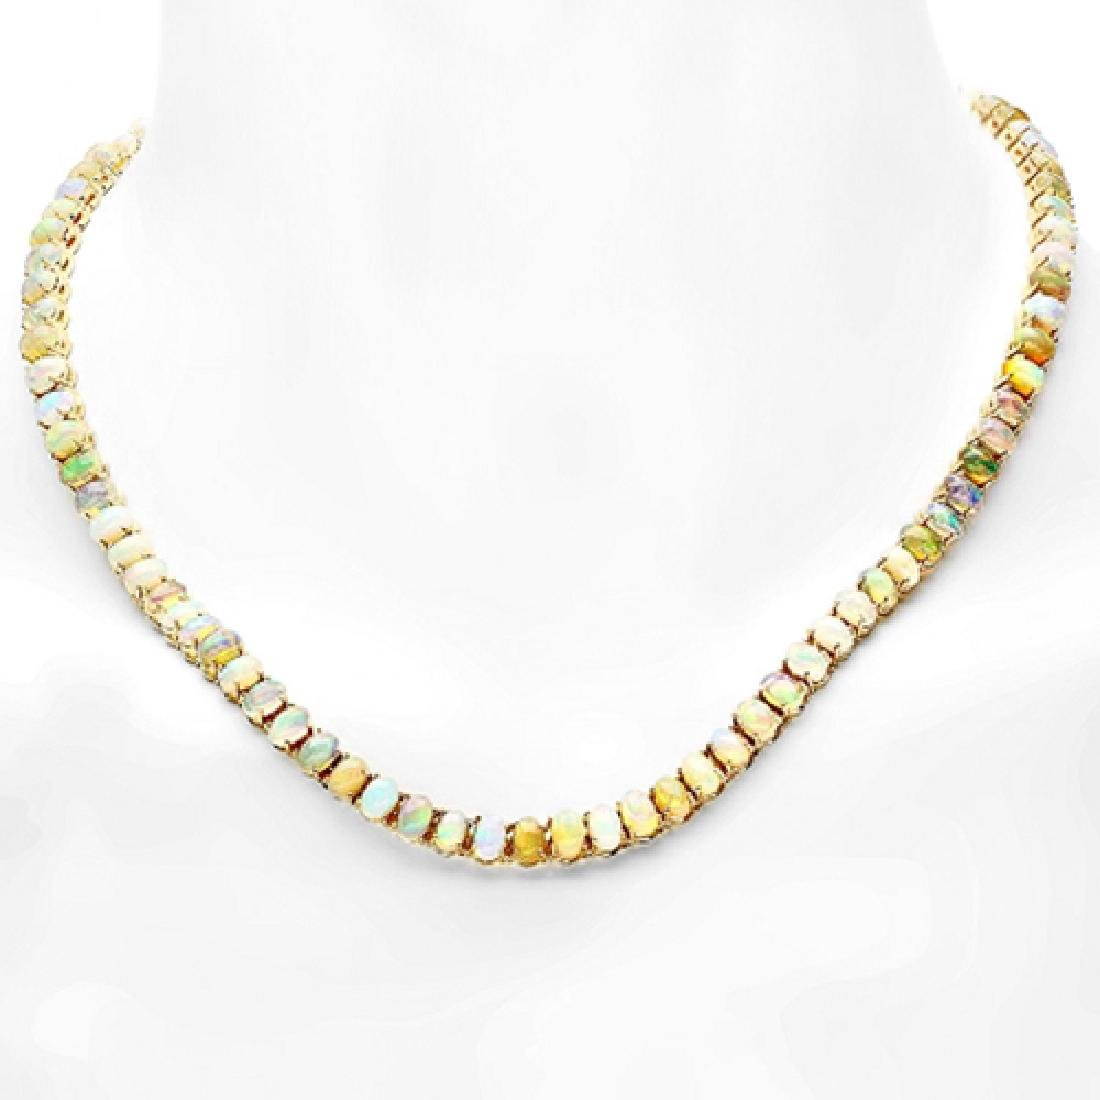 30.00 Carat Natural Opal 18K Solid Yellow Gold Necklace